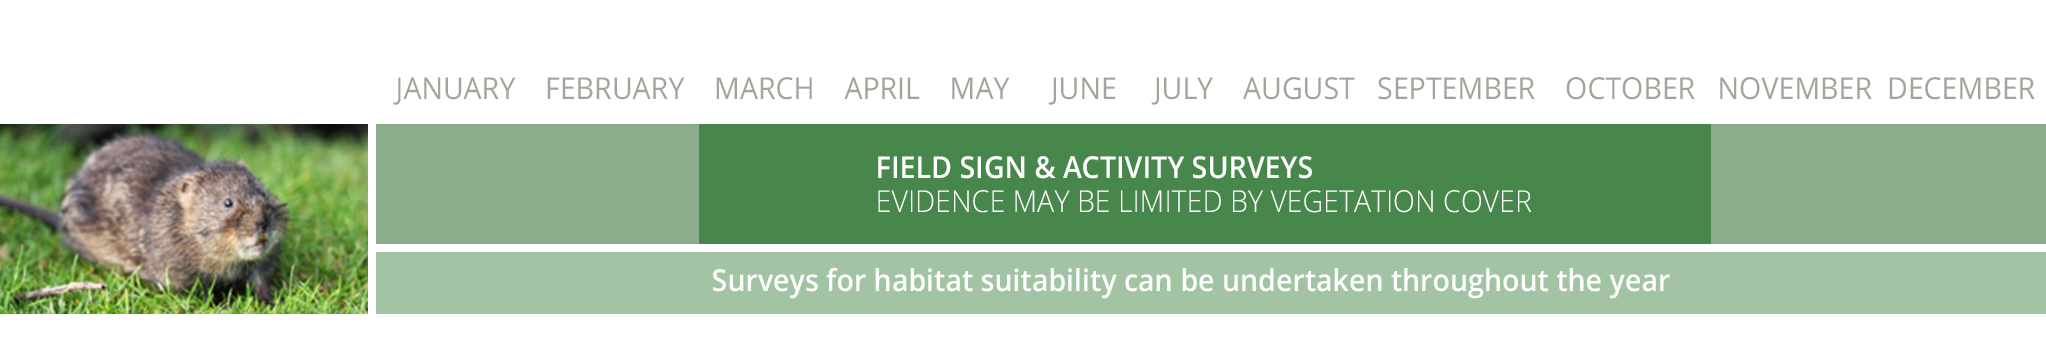 ecology survey calendar, protected species survey calendar